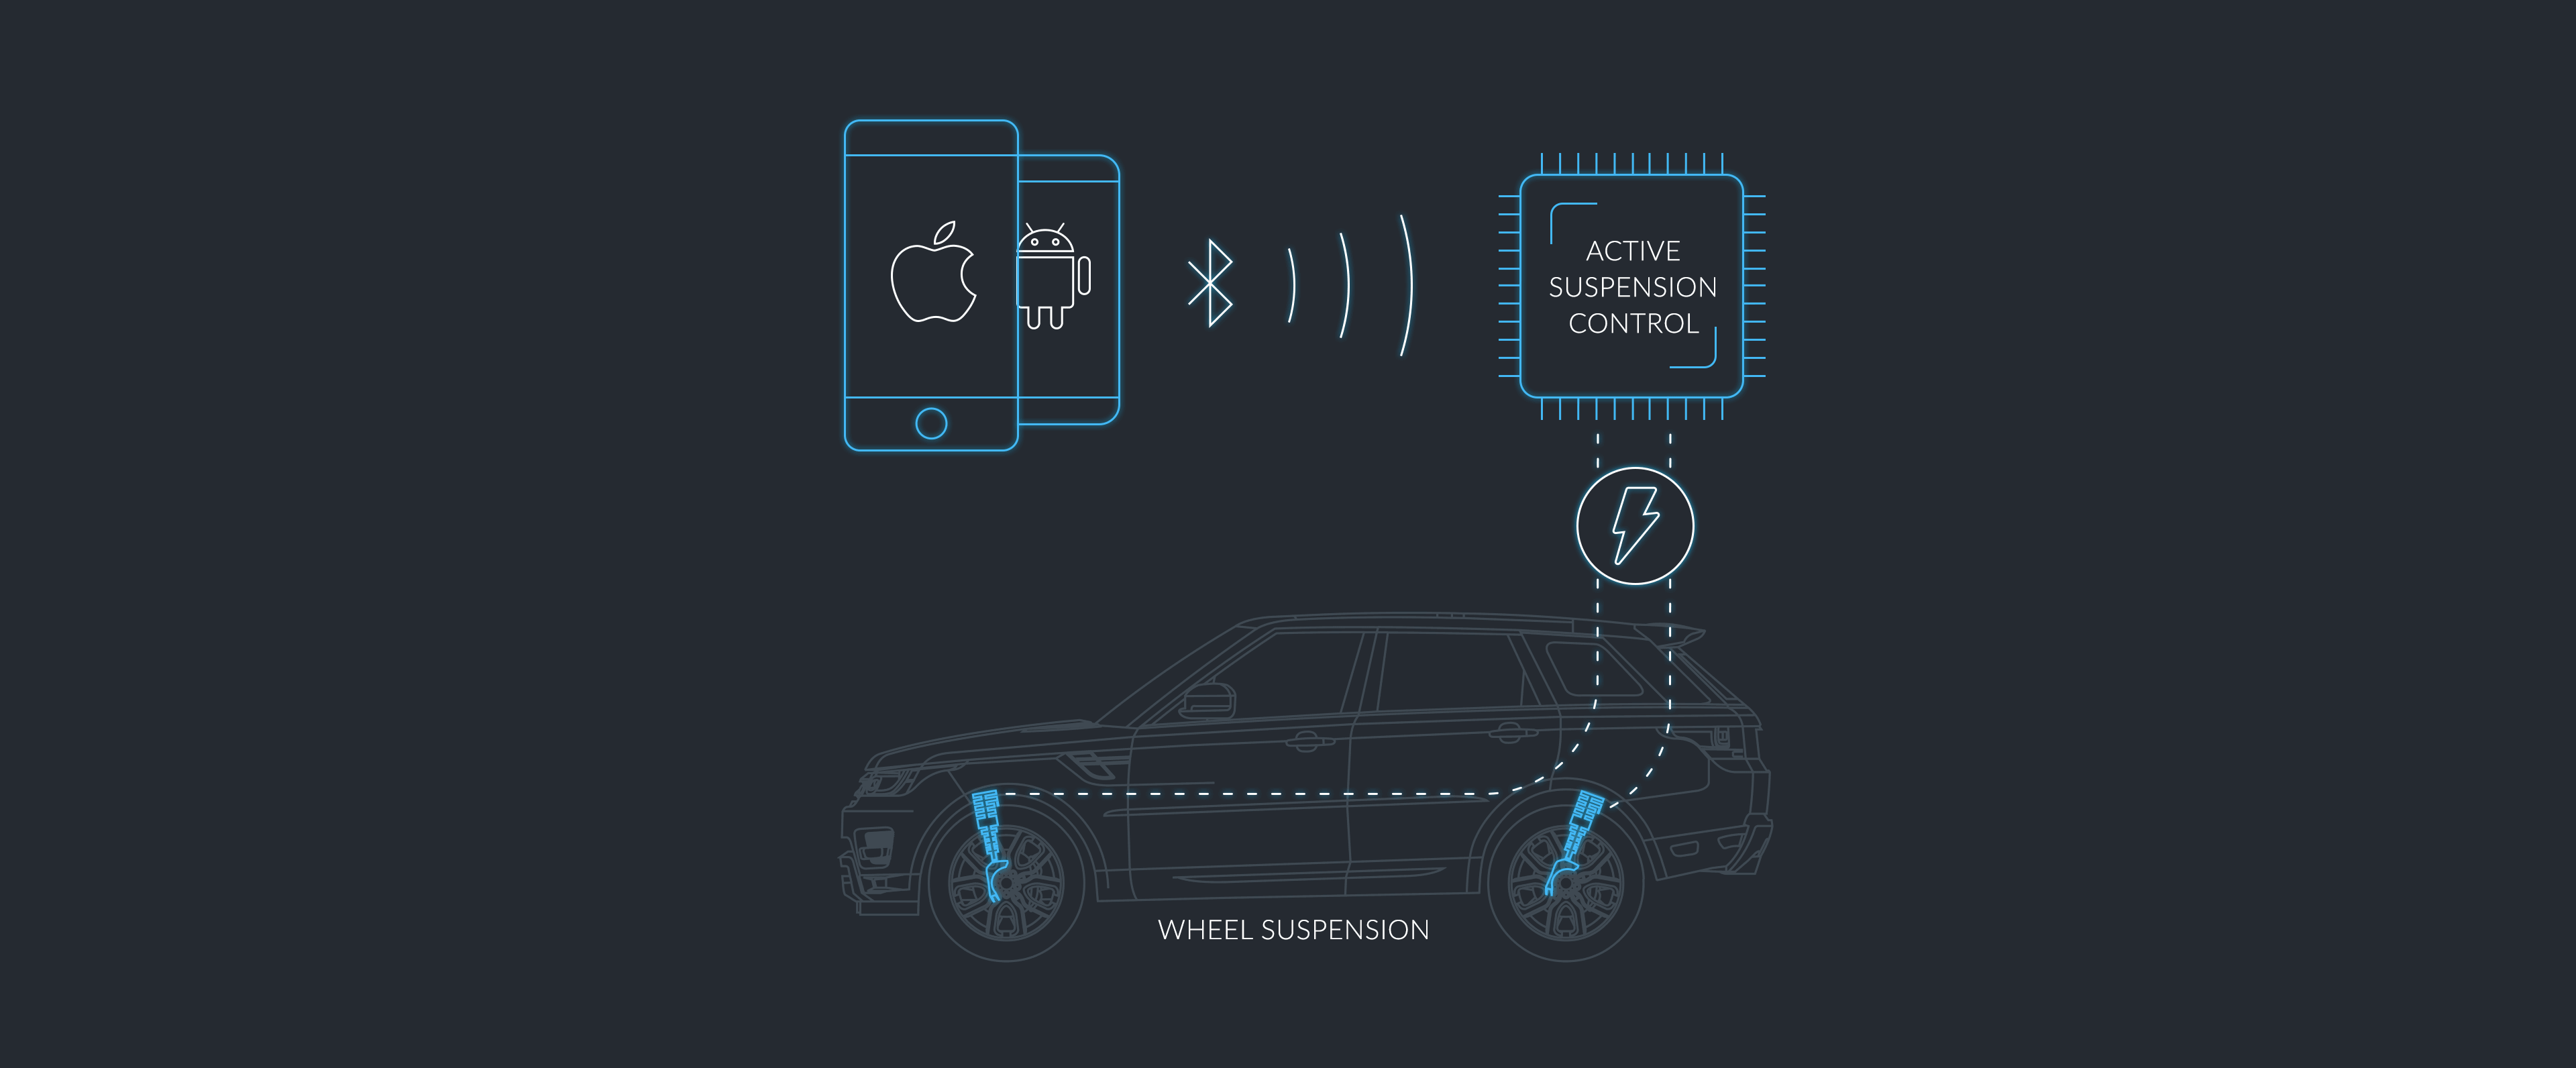 The device allows car owners to control wheel suspension via Bluetooth Low Energy connection